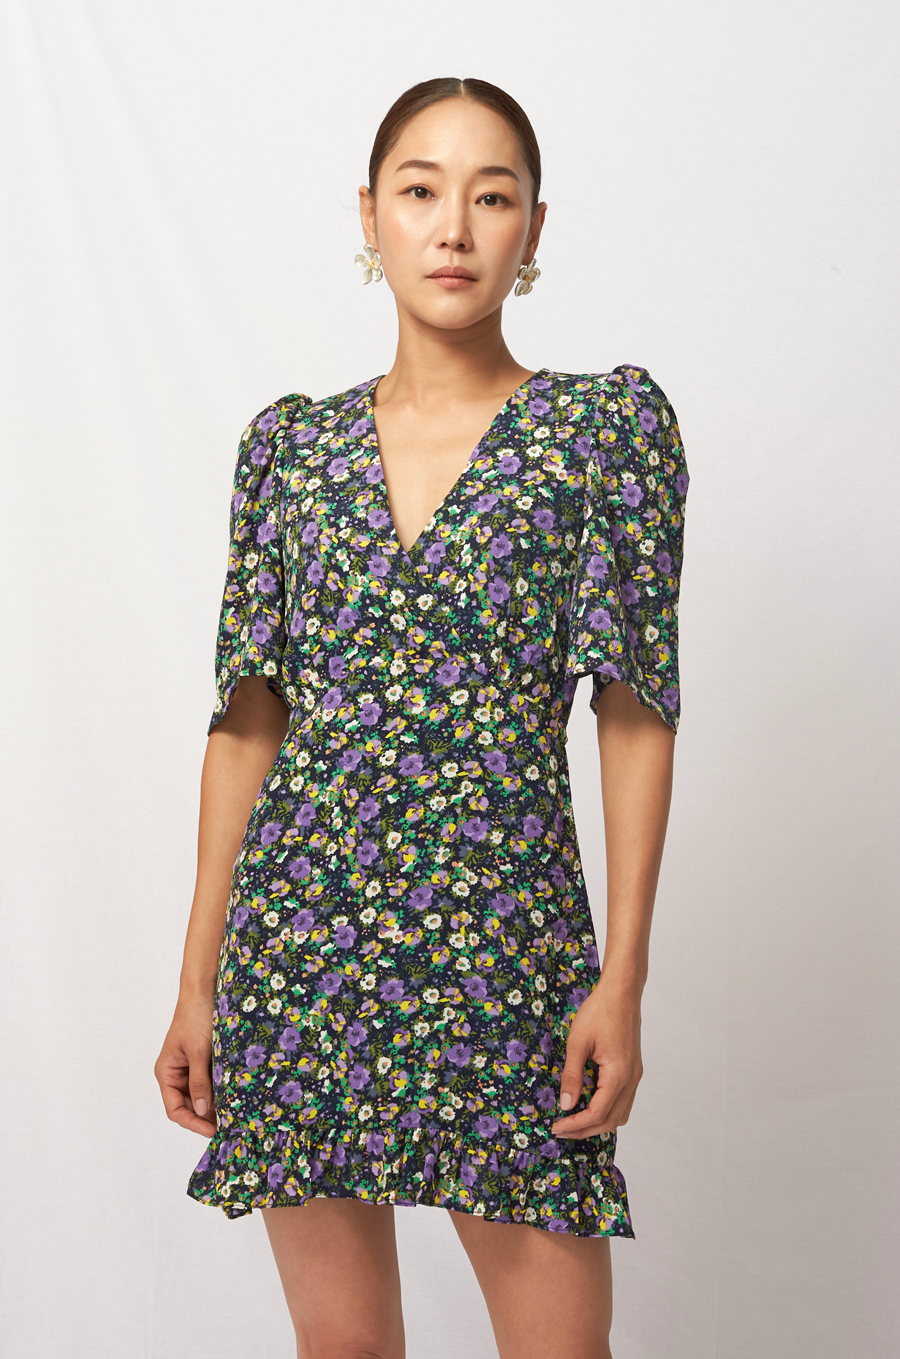 OLIVIA NZ Store online | Sakura Mini Dress / Navy